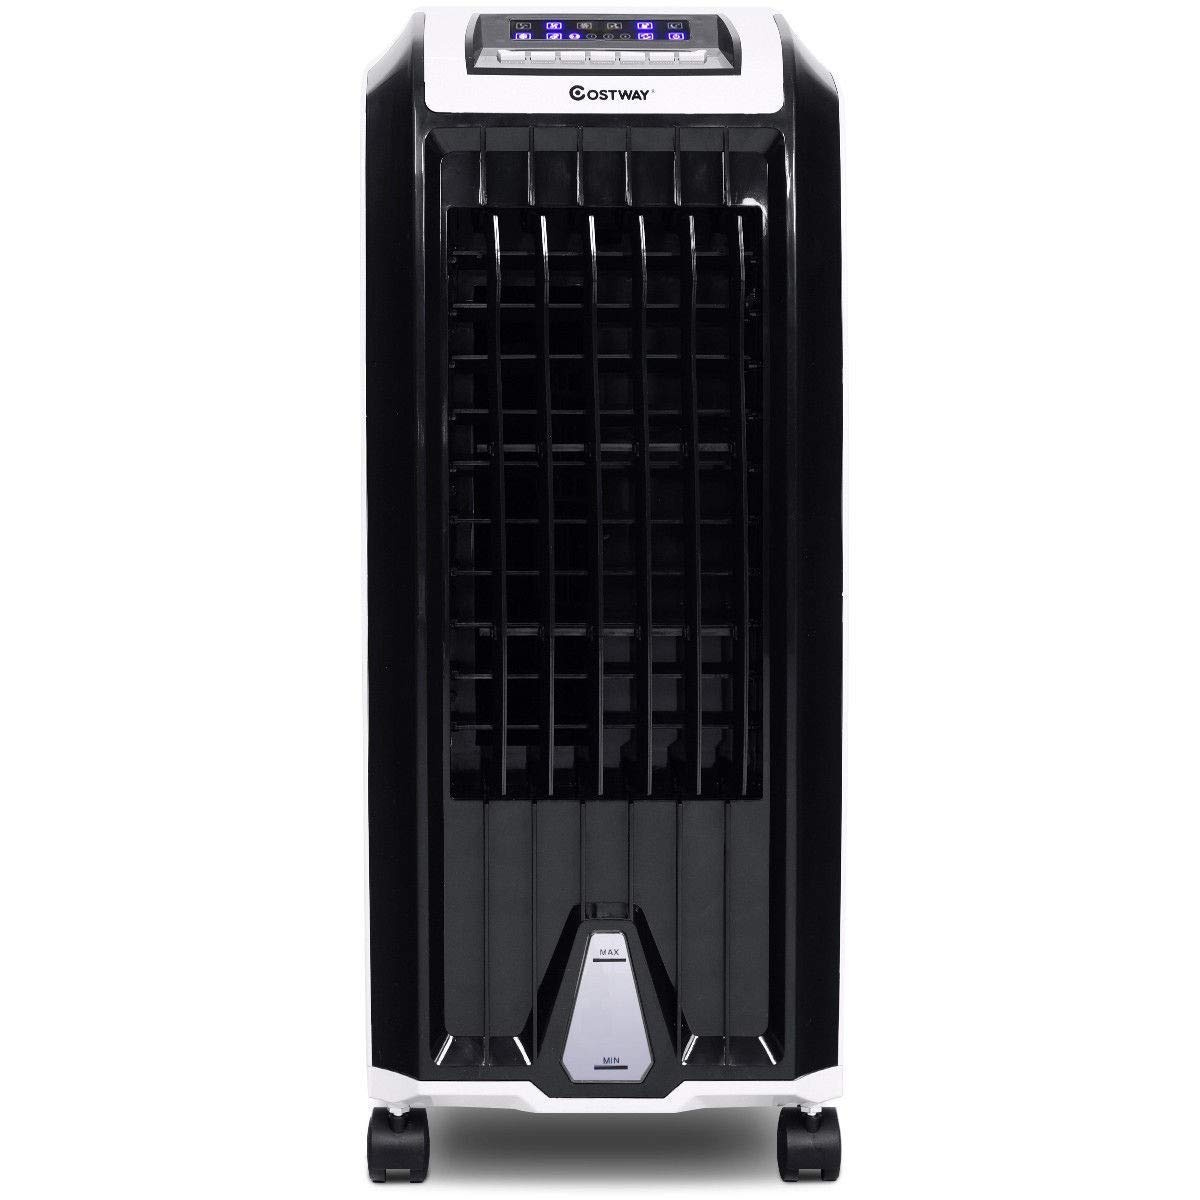 BeUniqueToday Evaporative Portable Air Conditioner Cooler, Air Cooler Portable Conditioner Evaporative Fan, Humidifier Home Personal Cooling Small Evaporator Air Conditioner Portable